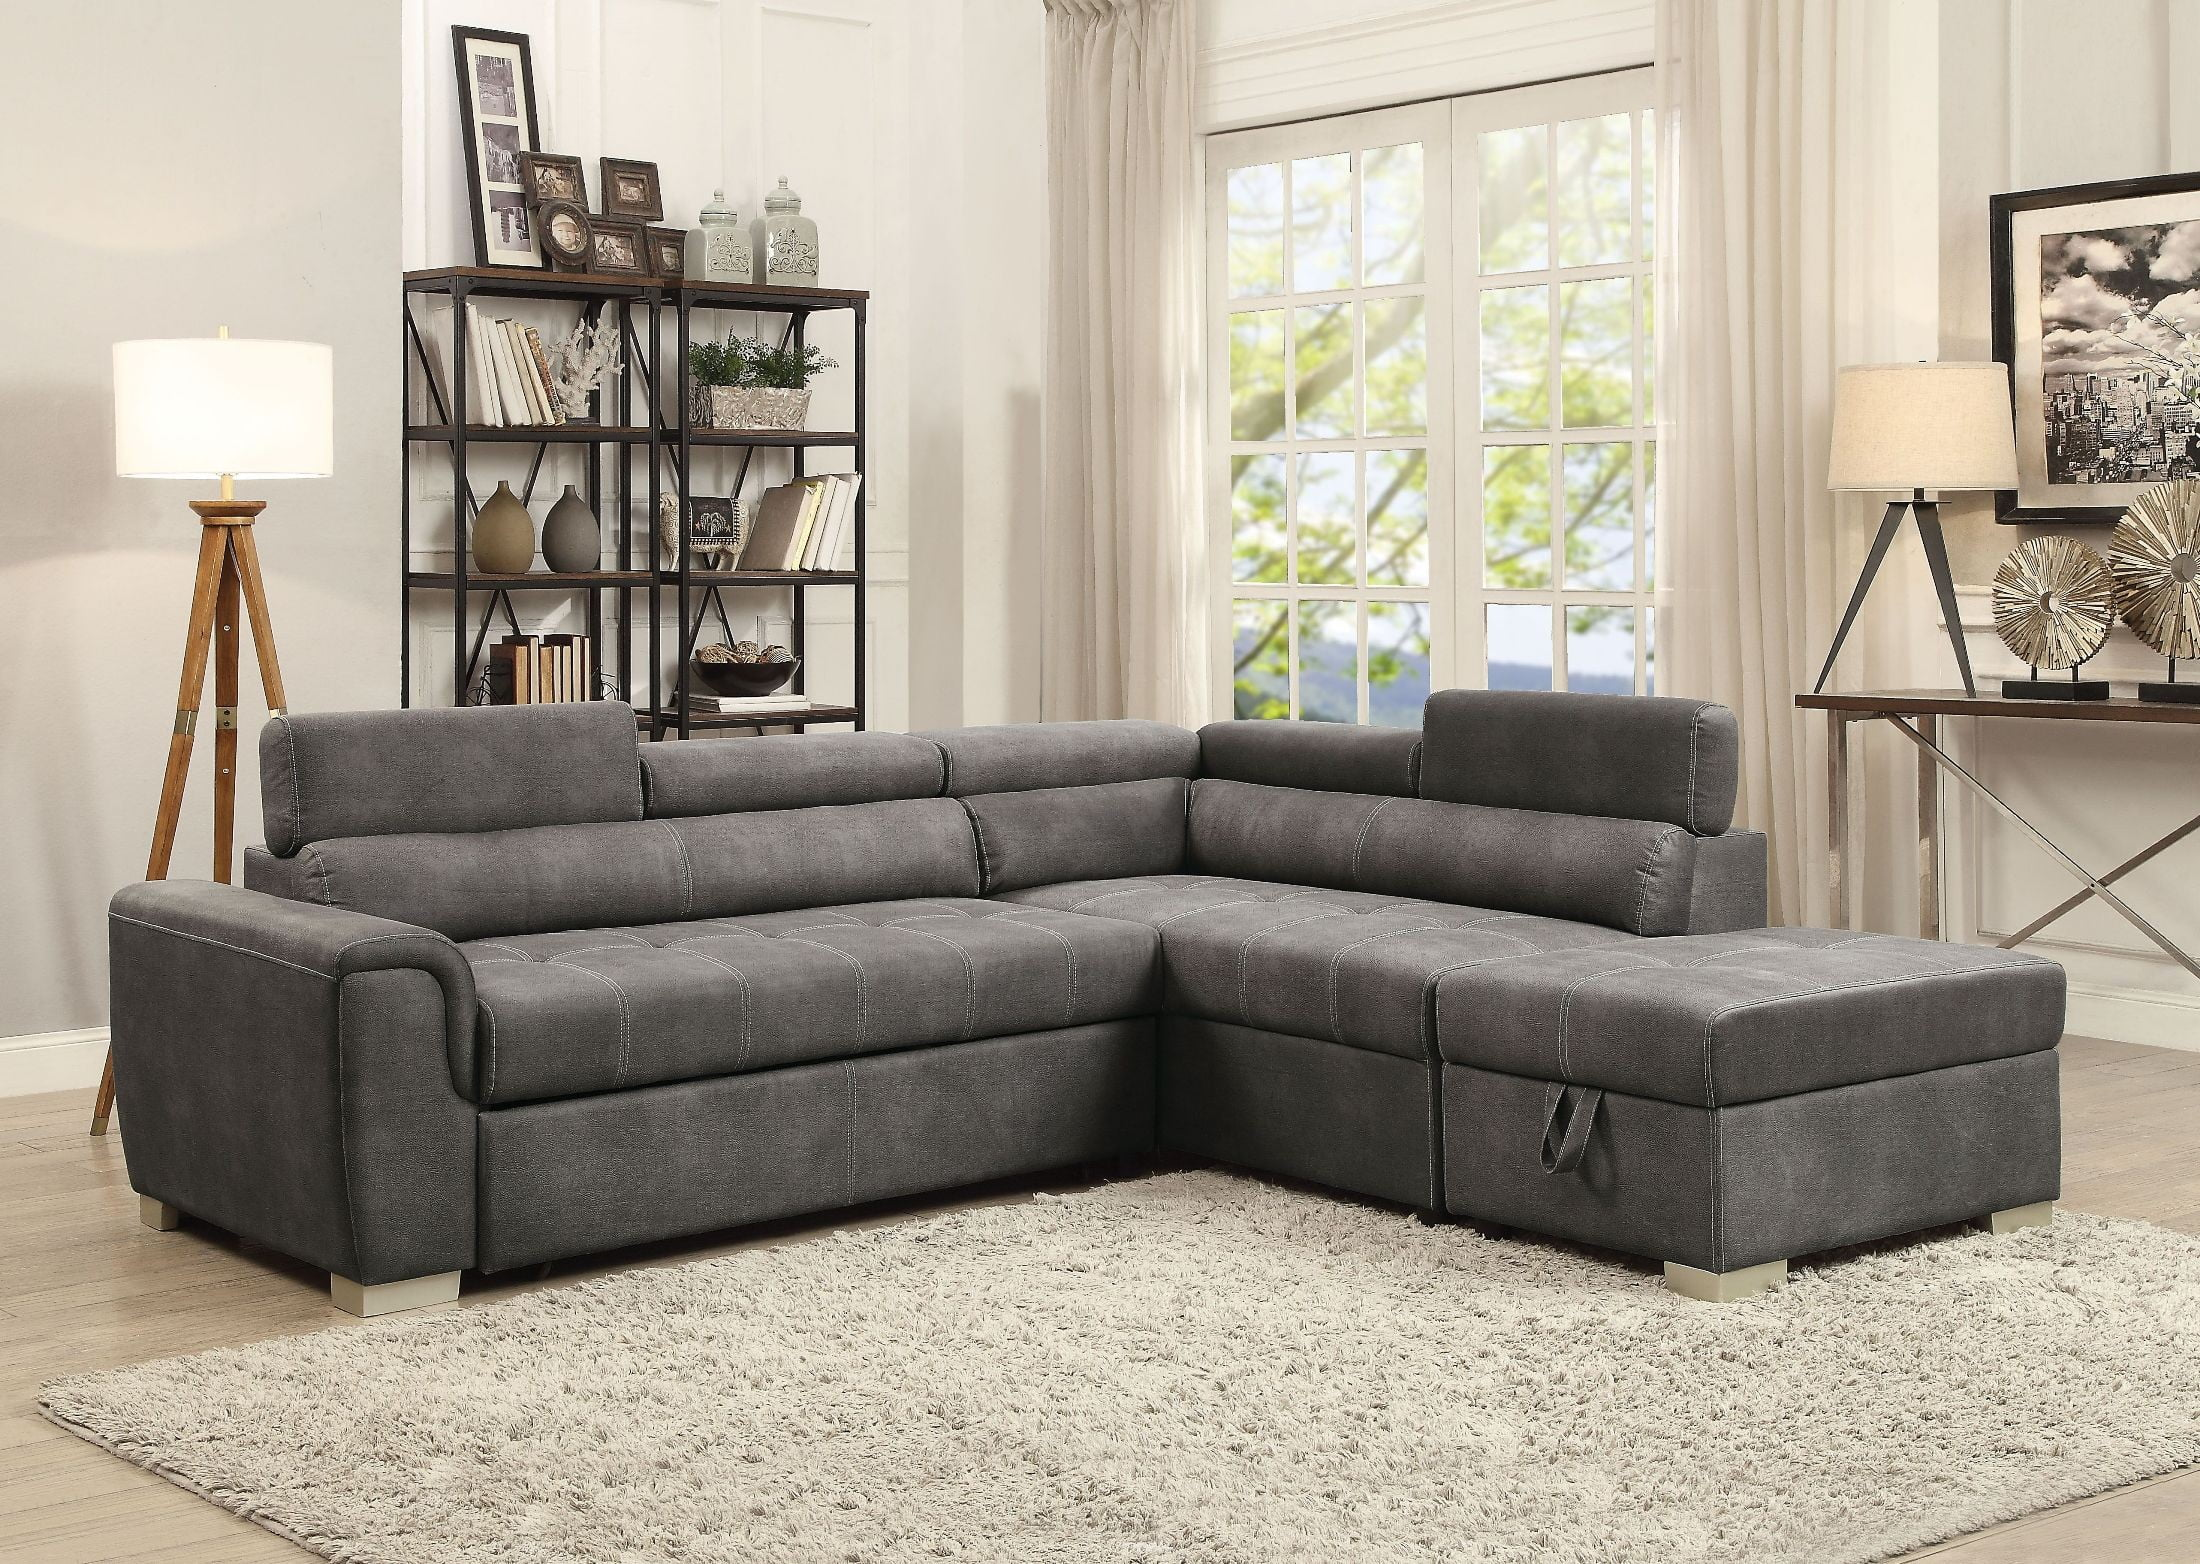 thelma gray polished pull-out sofa bed with ottoman by Acme    WMZUKQE